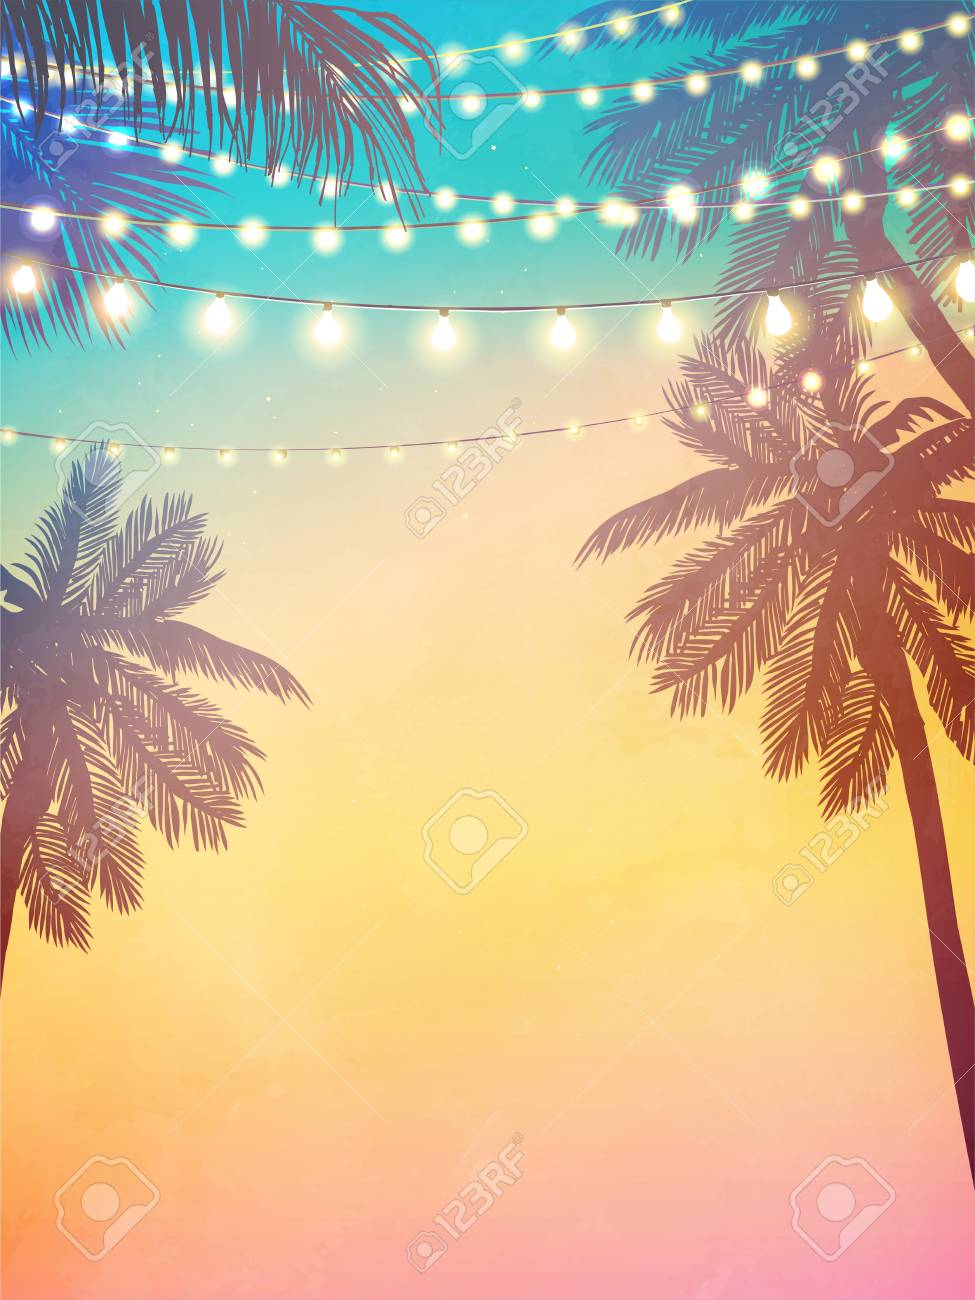 Hanging decorative holiday lights for a beach party invitation. Inspiration card for wedding, date, birthday - 121620384